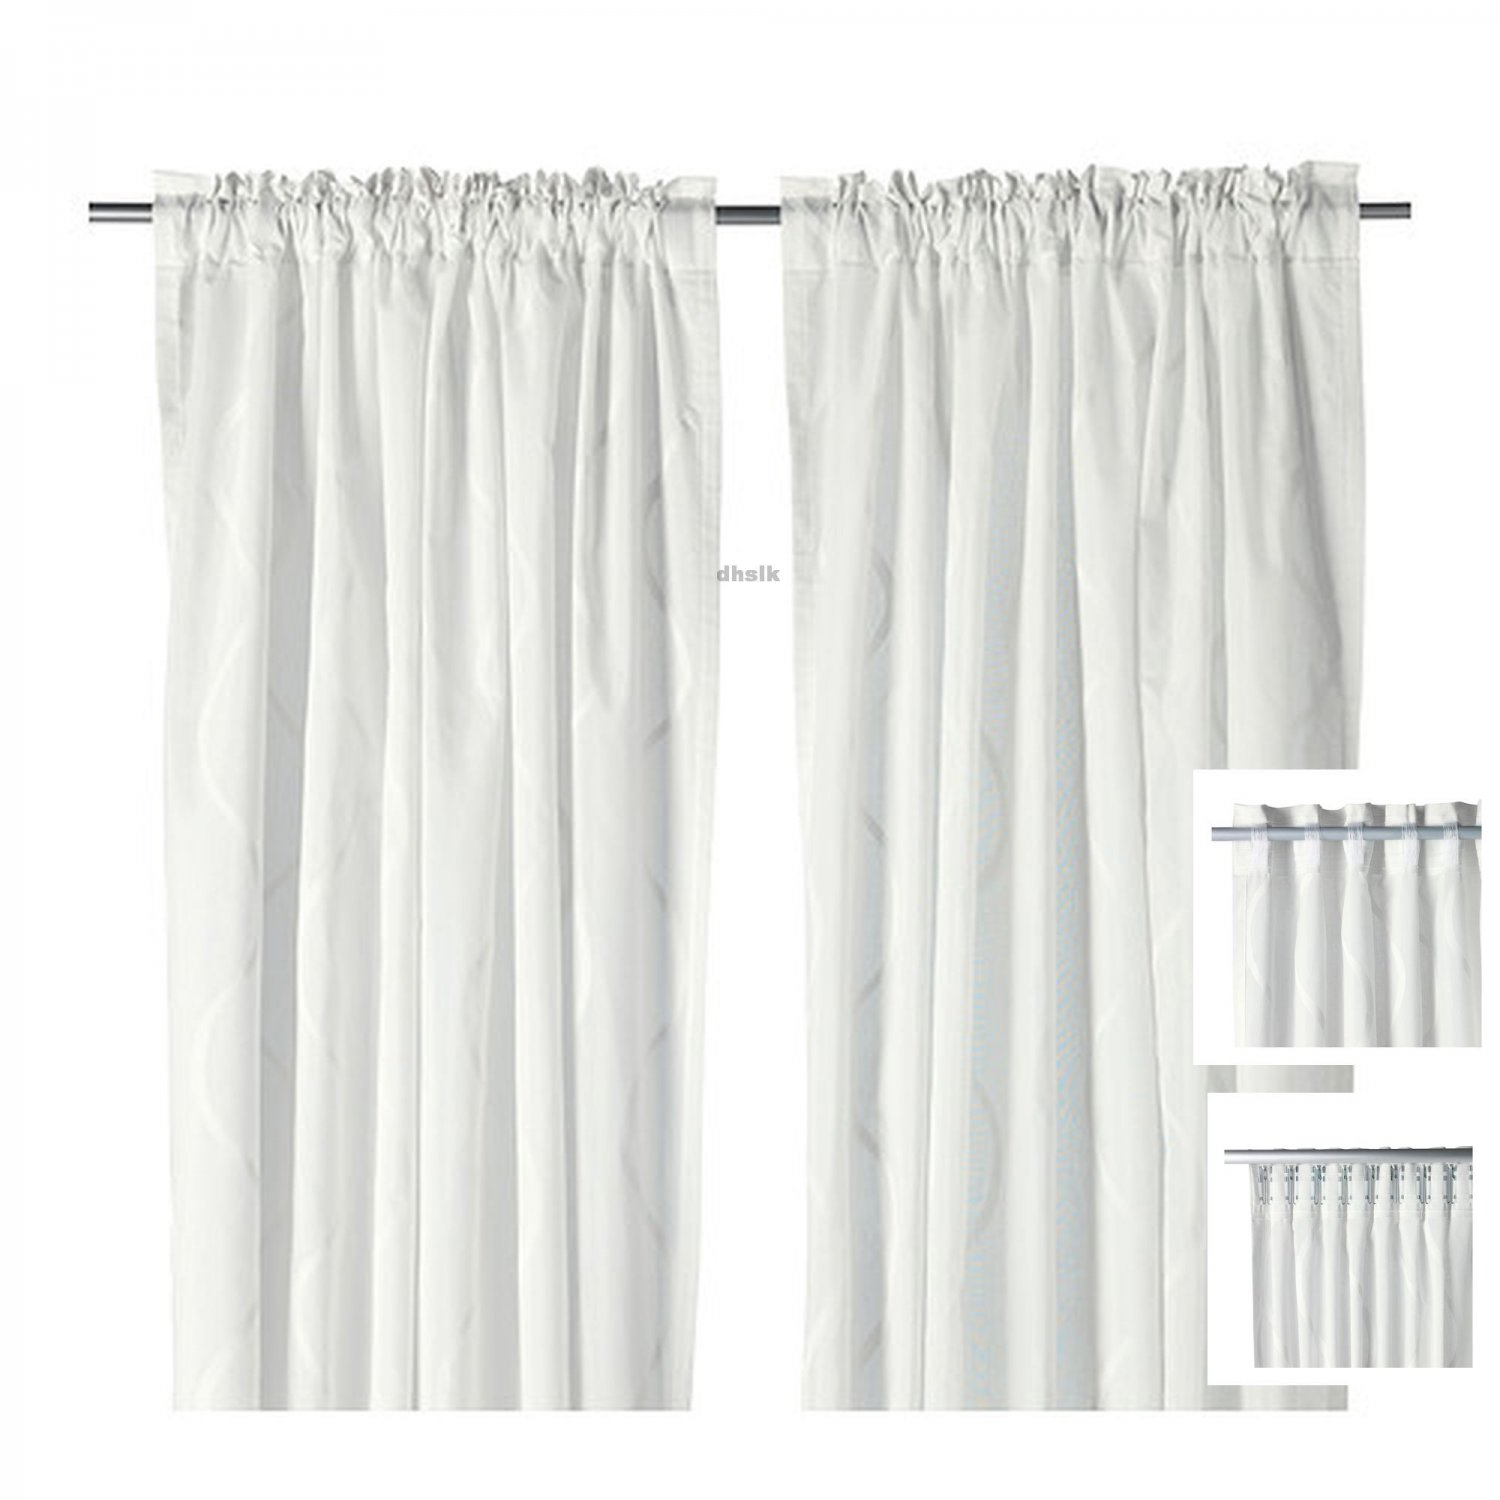 Ikea hillmari curtains drapes white for White curtains ikea